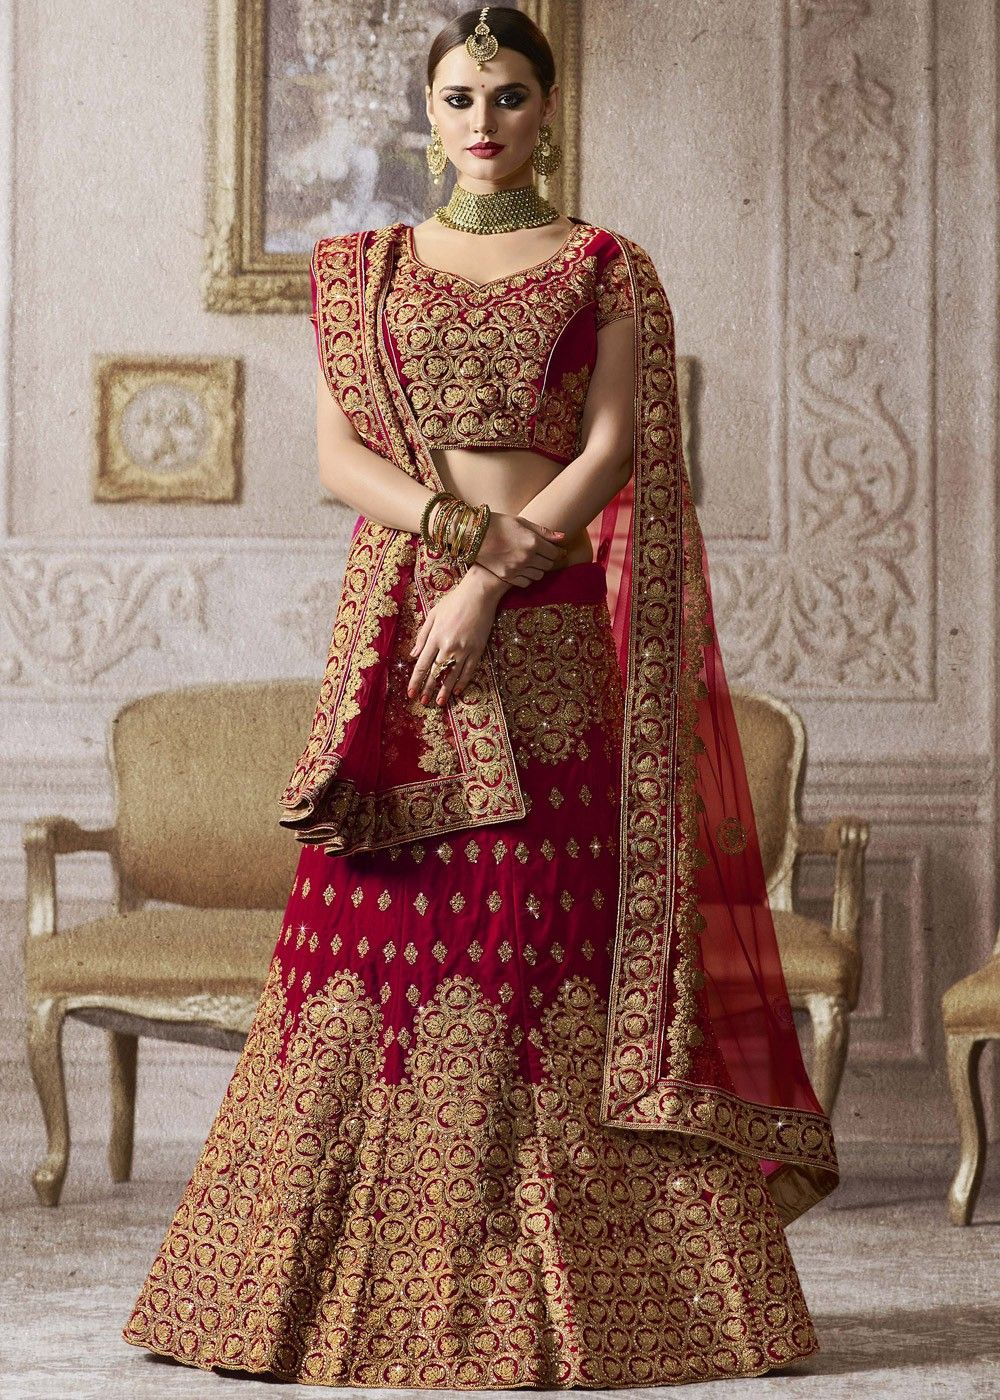 8197d4705b Be the prettiest #bride in this #red #bridal #velvet #lehenga embellished  with all over heavy #zari #embroidery and #kundan work.